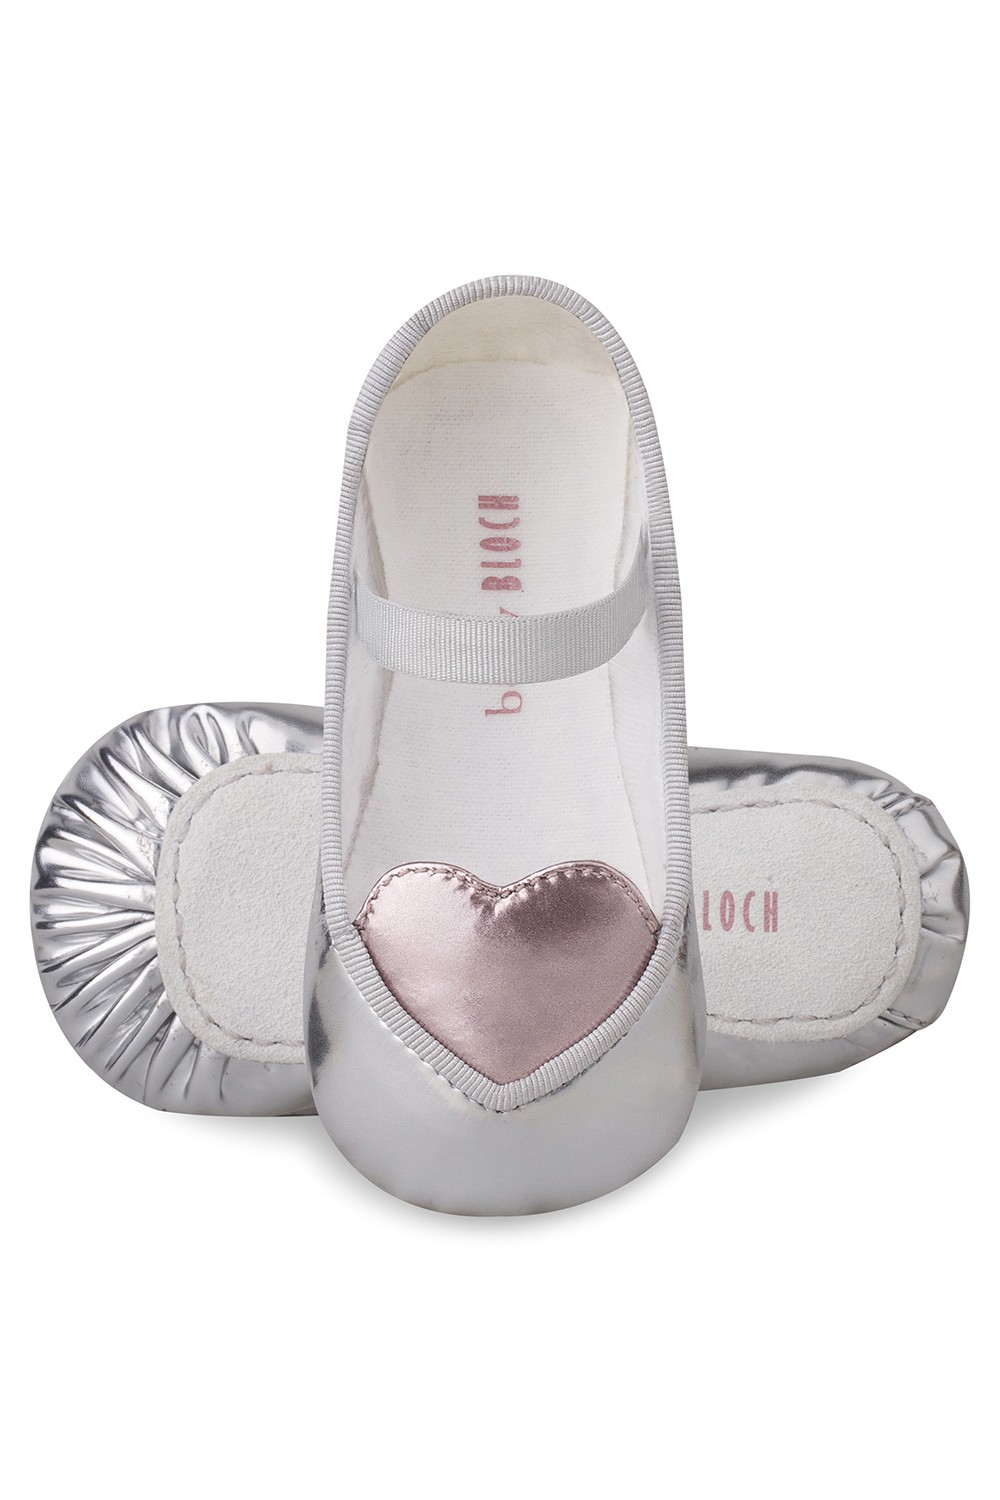 Baby Argento Annabelle Ballet Flat Shoes Babies Fashion Shoes